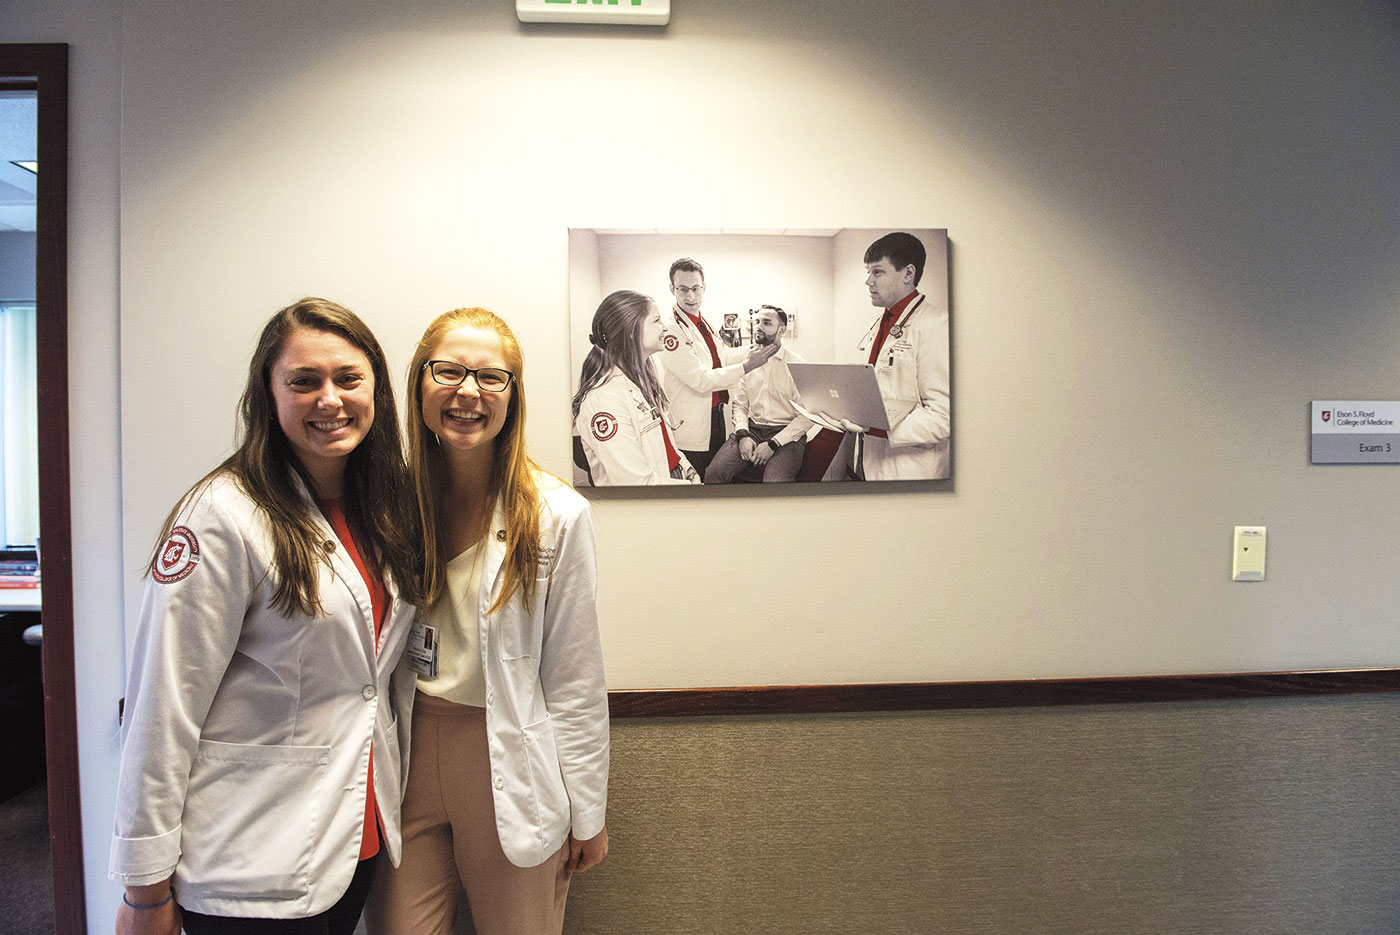 WSU medical college students Becky Gold and Jamie Mackiewicz smiling